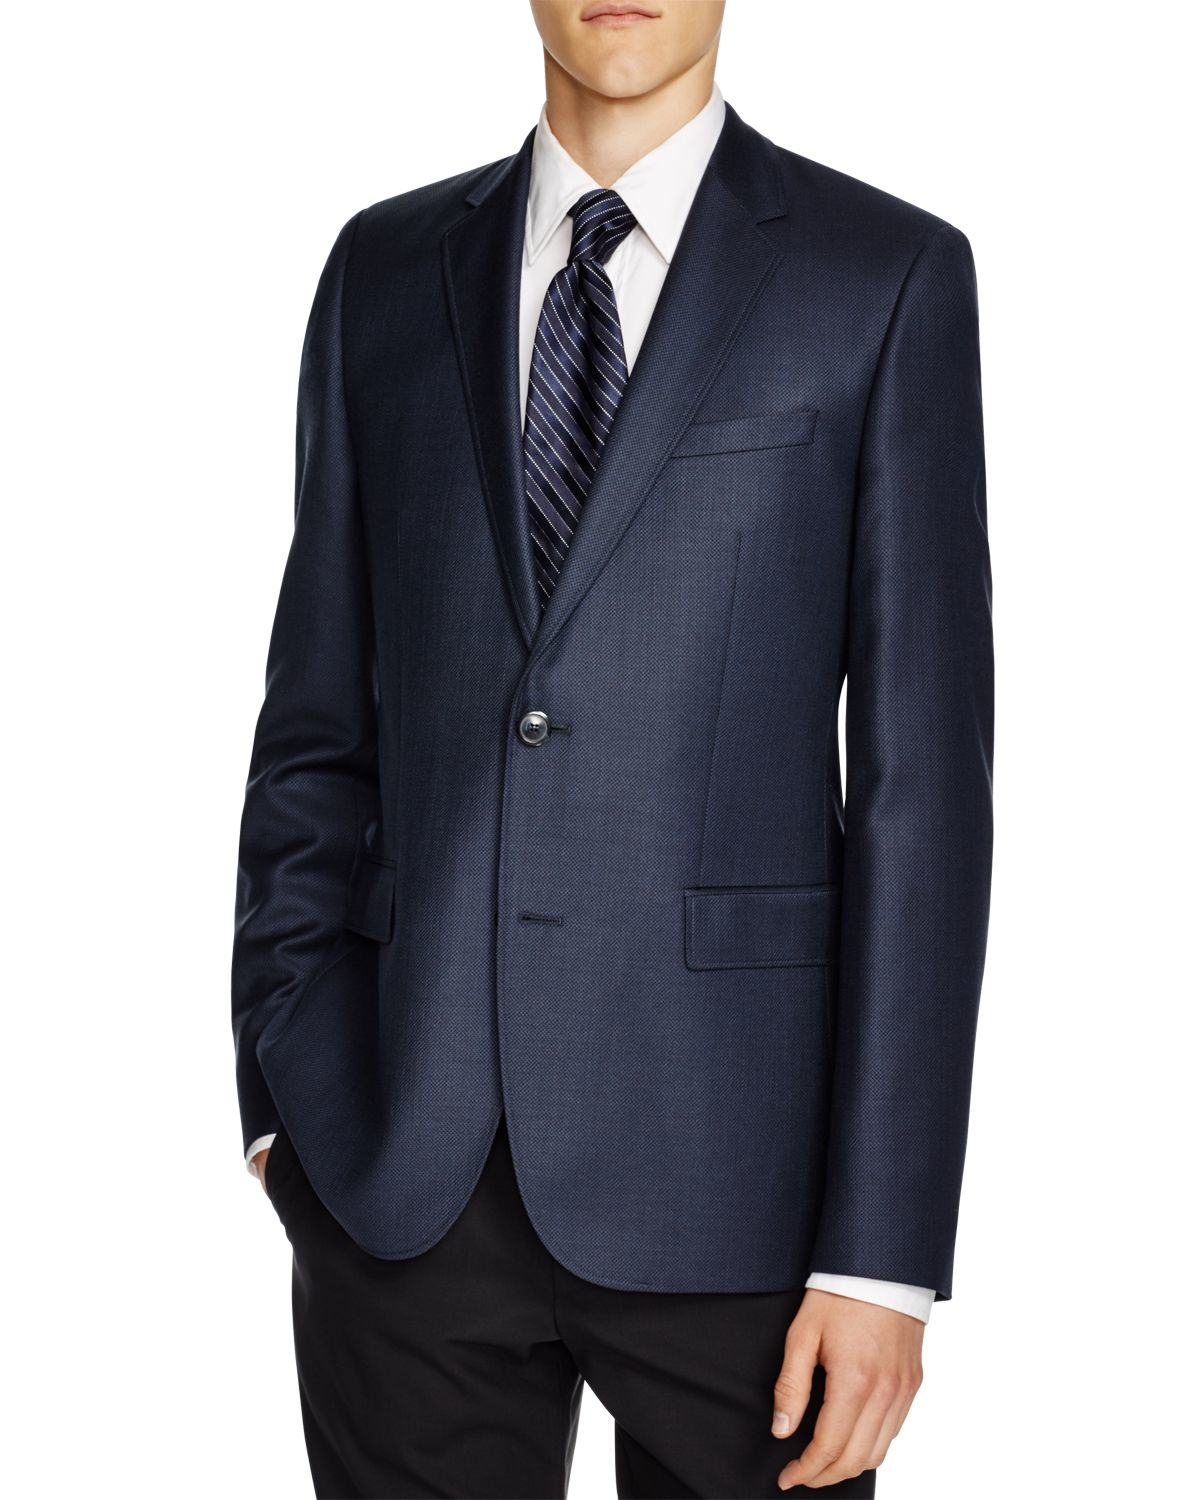 Regent Fit Herringbone Sport Coat $ Free Standard Shipping on orders $ or more Sport coats at Brooks Brothers are available in an array of colors, patterns and fits, making them just as ideal for an informal business meeting as they are for completing a sophisticated weekend look. Choose from sport coats in solid neutrals.